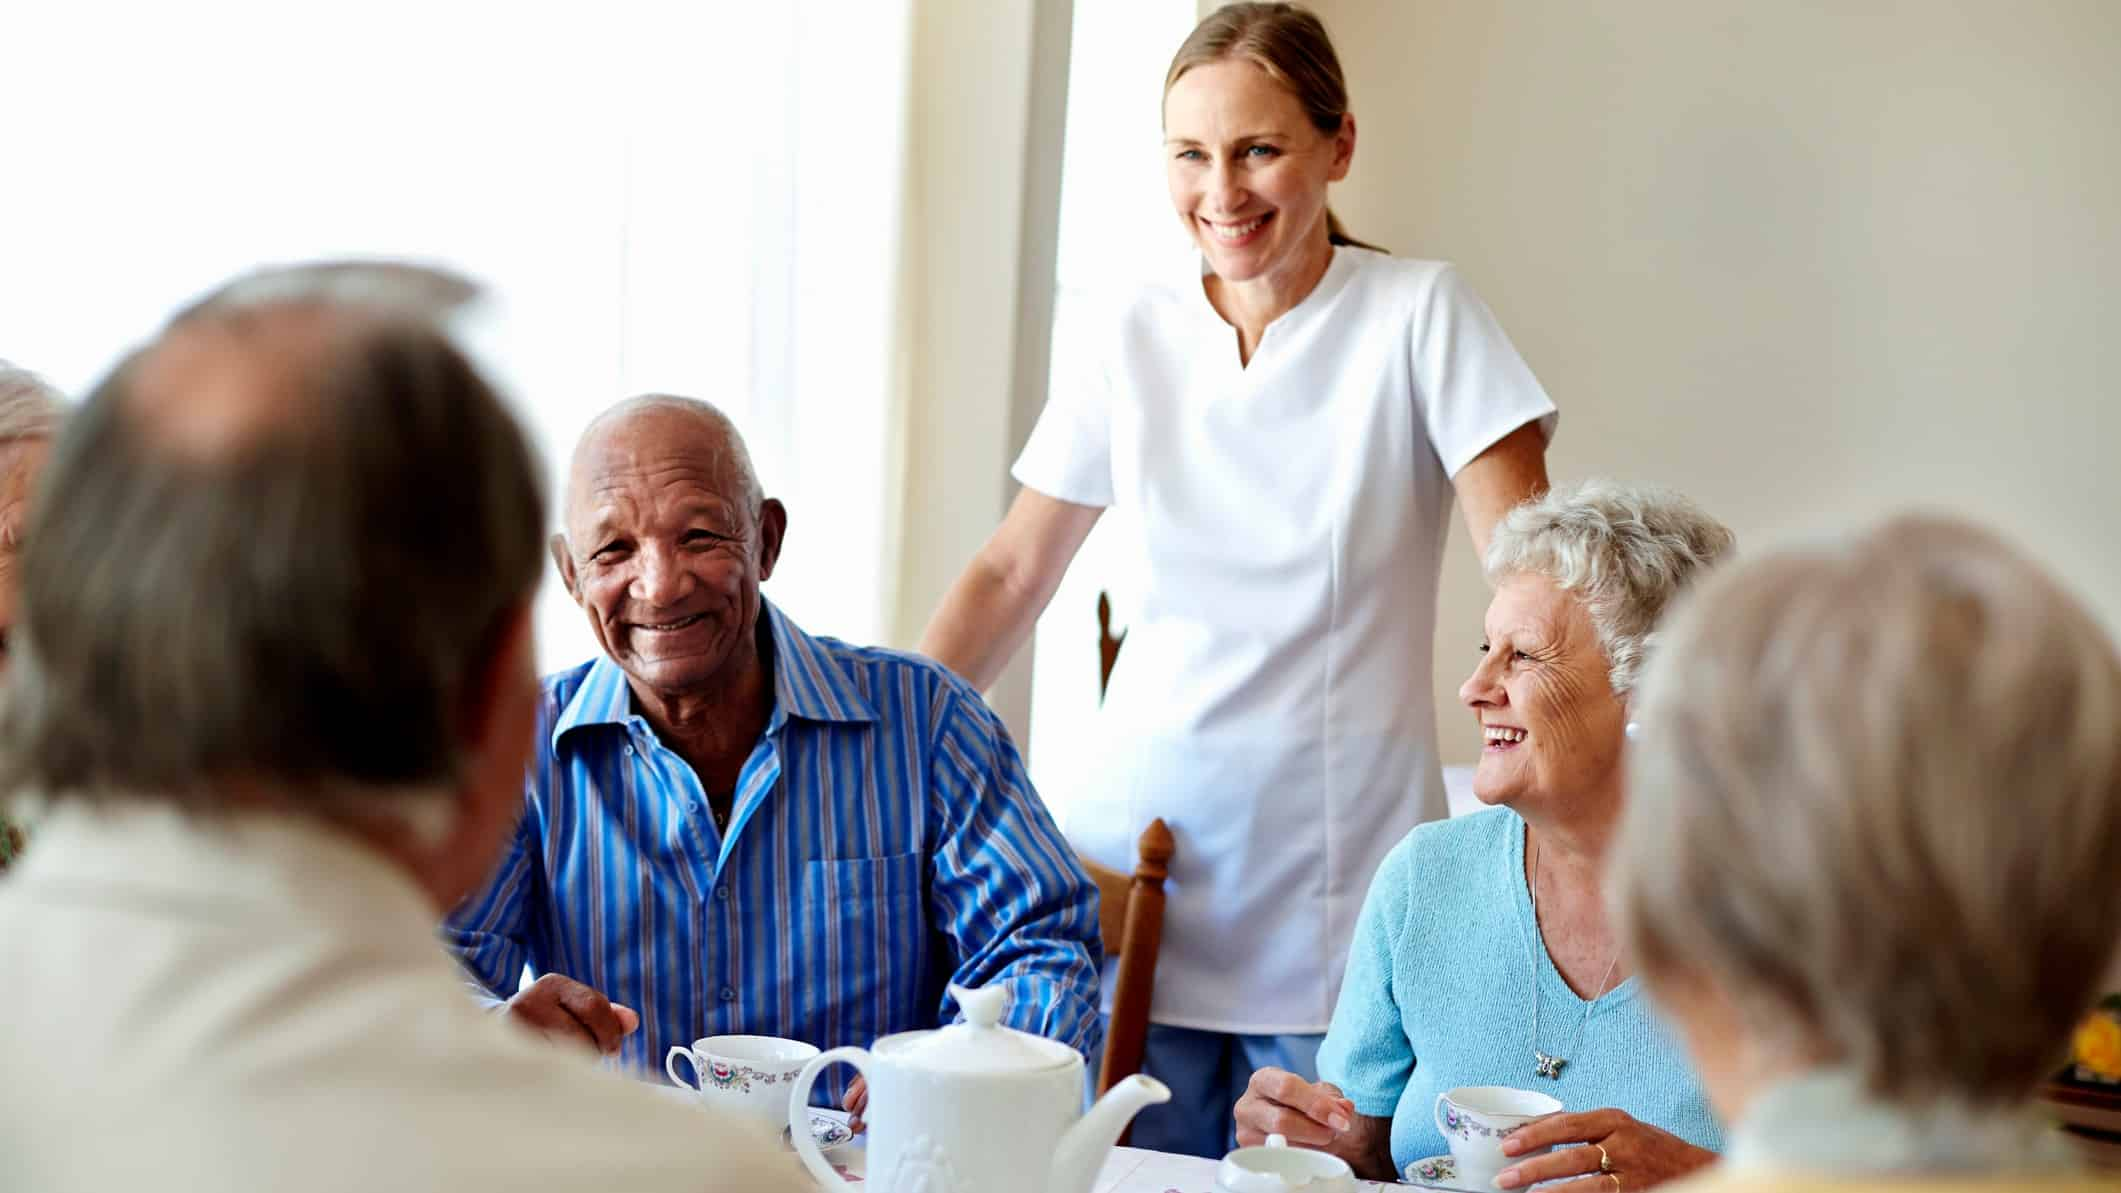 healthcare worker overseeing group of aged care residents at table